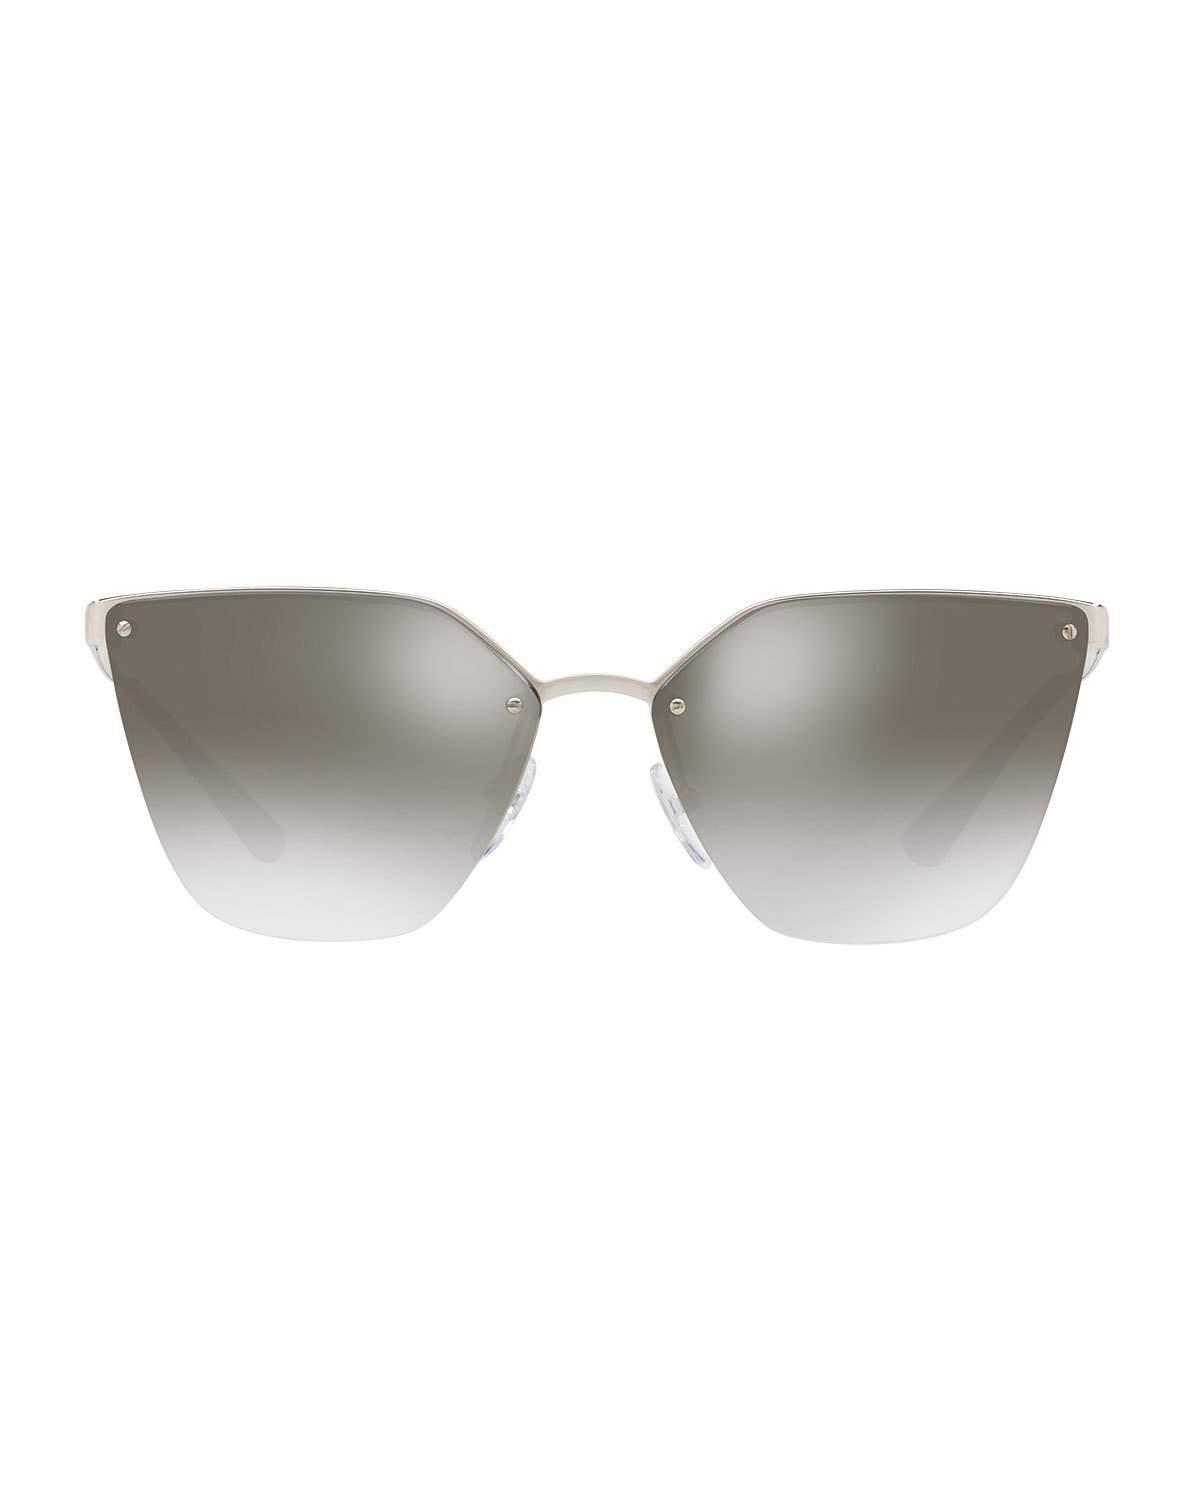 274229c209a3 ... top quality lyst prada mirrored square cat eye sunglasses in gray d6b46  e780d